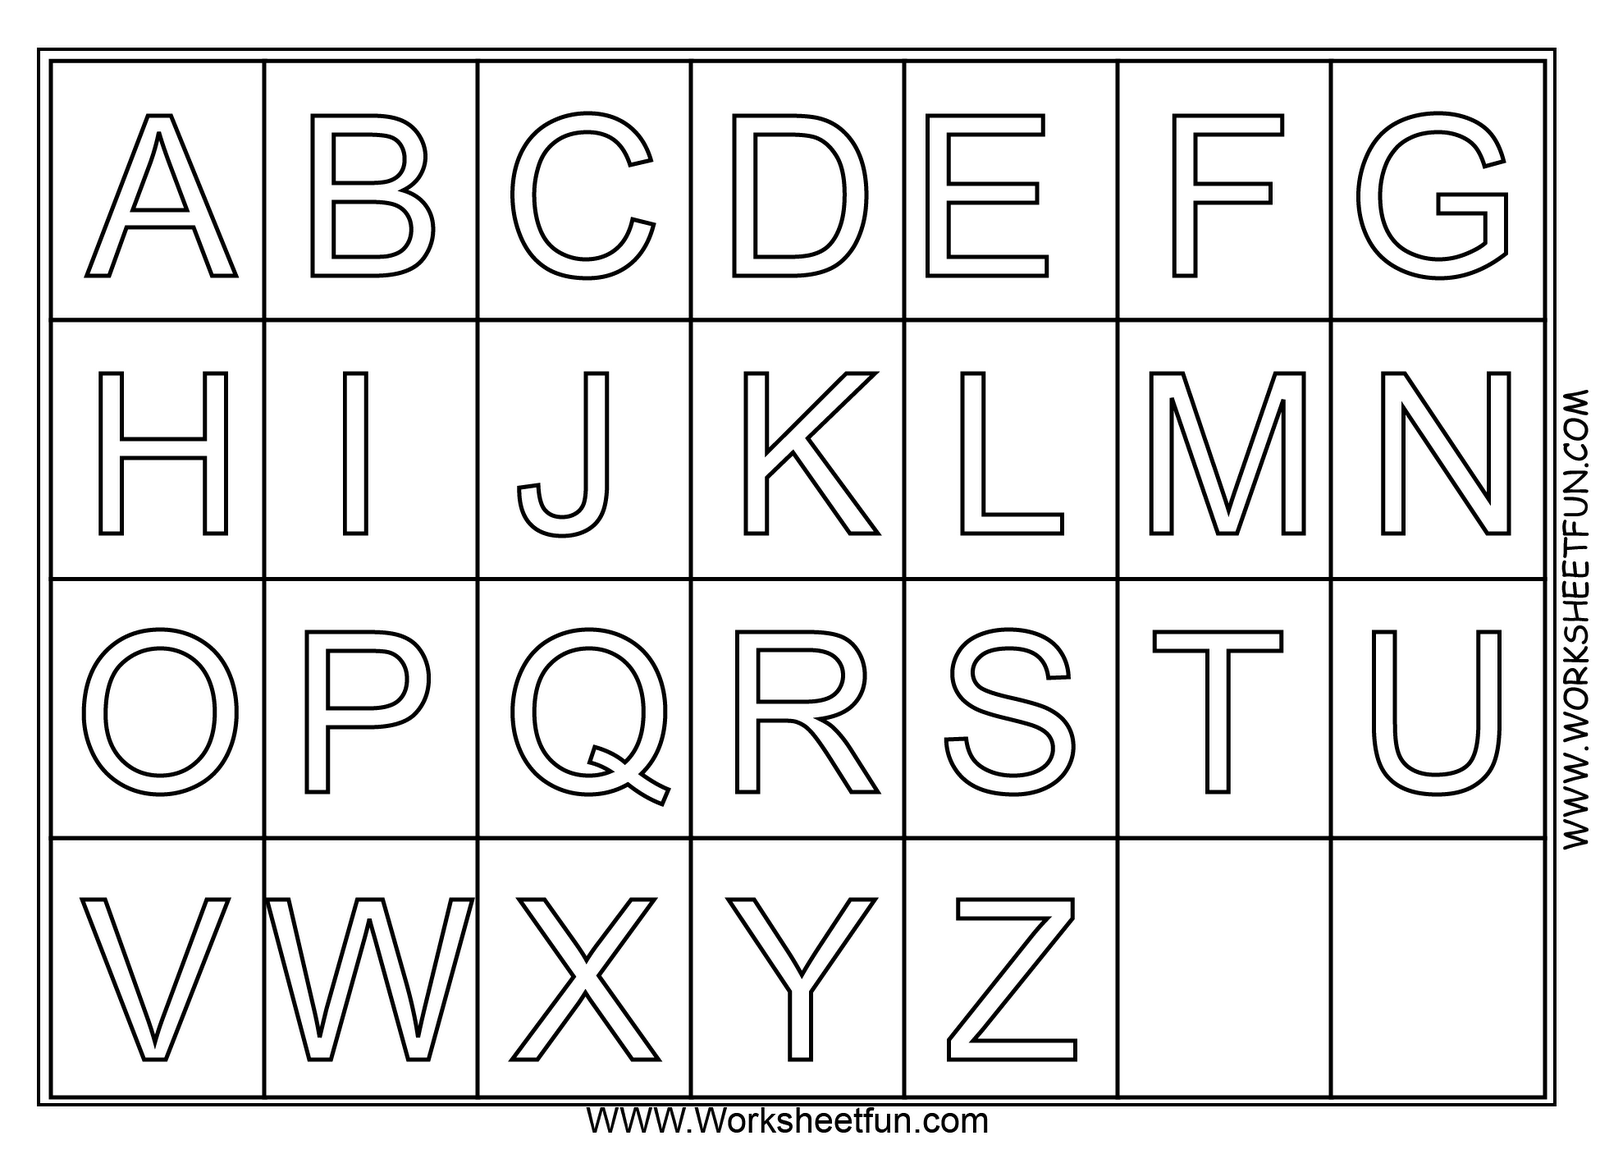 Worksheet Abc Print Out Letters 1000 images about chicka boom on pinterest number words play sets and boom